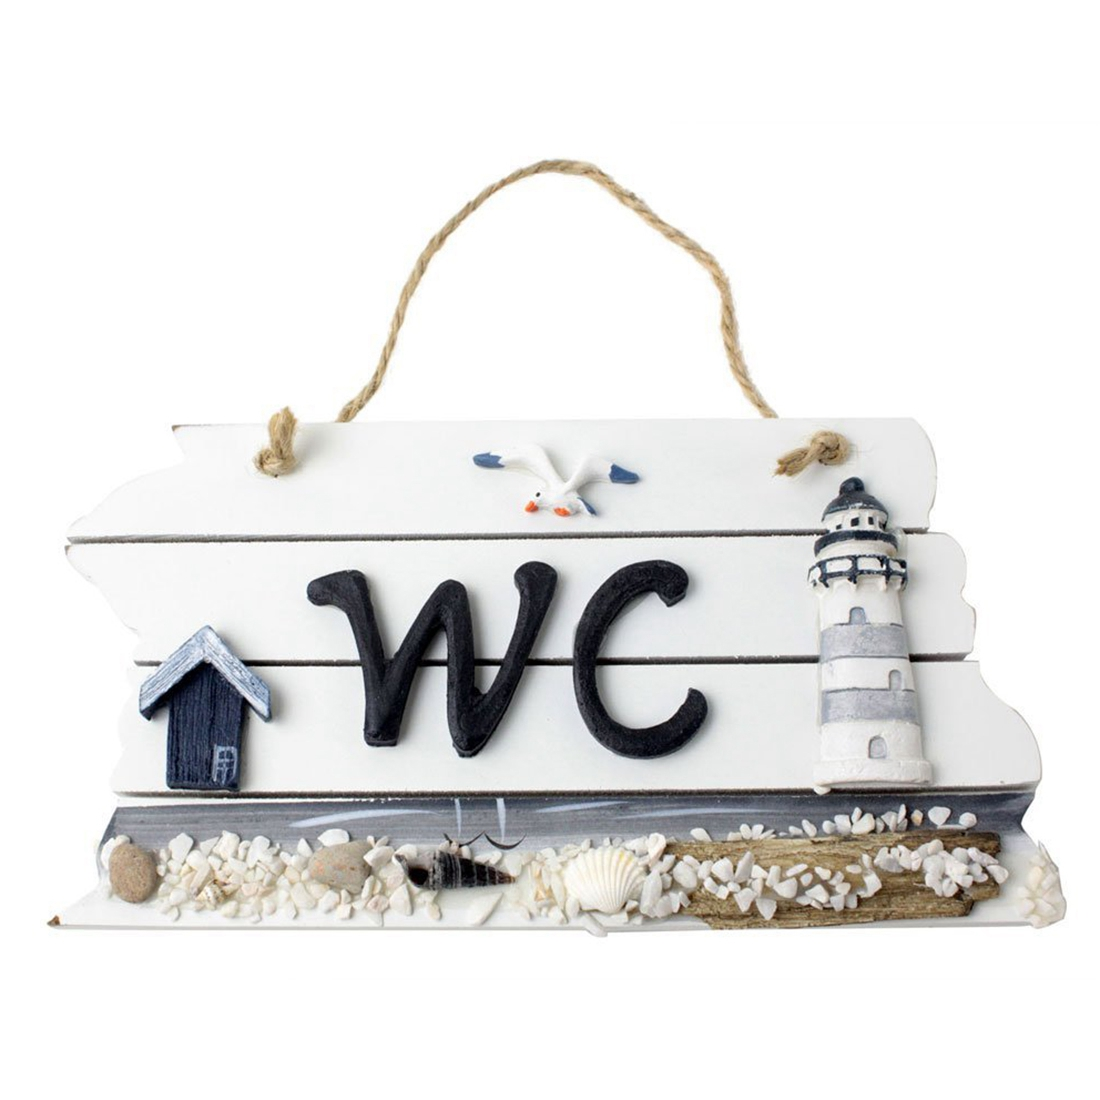 MYLB-Mediterranean Style Nordic Wooden WC Shingle Doorplate/Plaque/Sign image